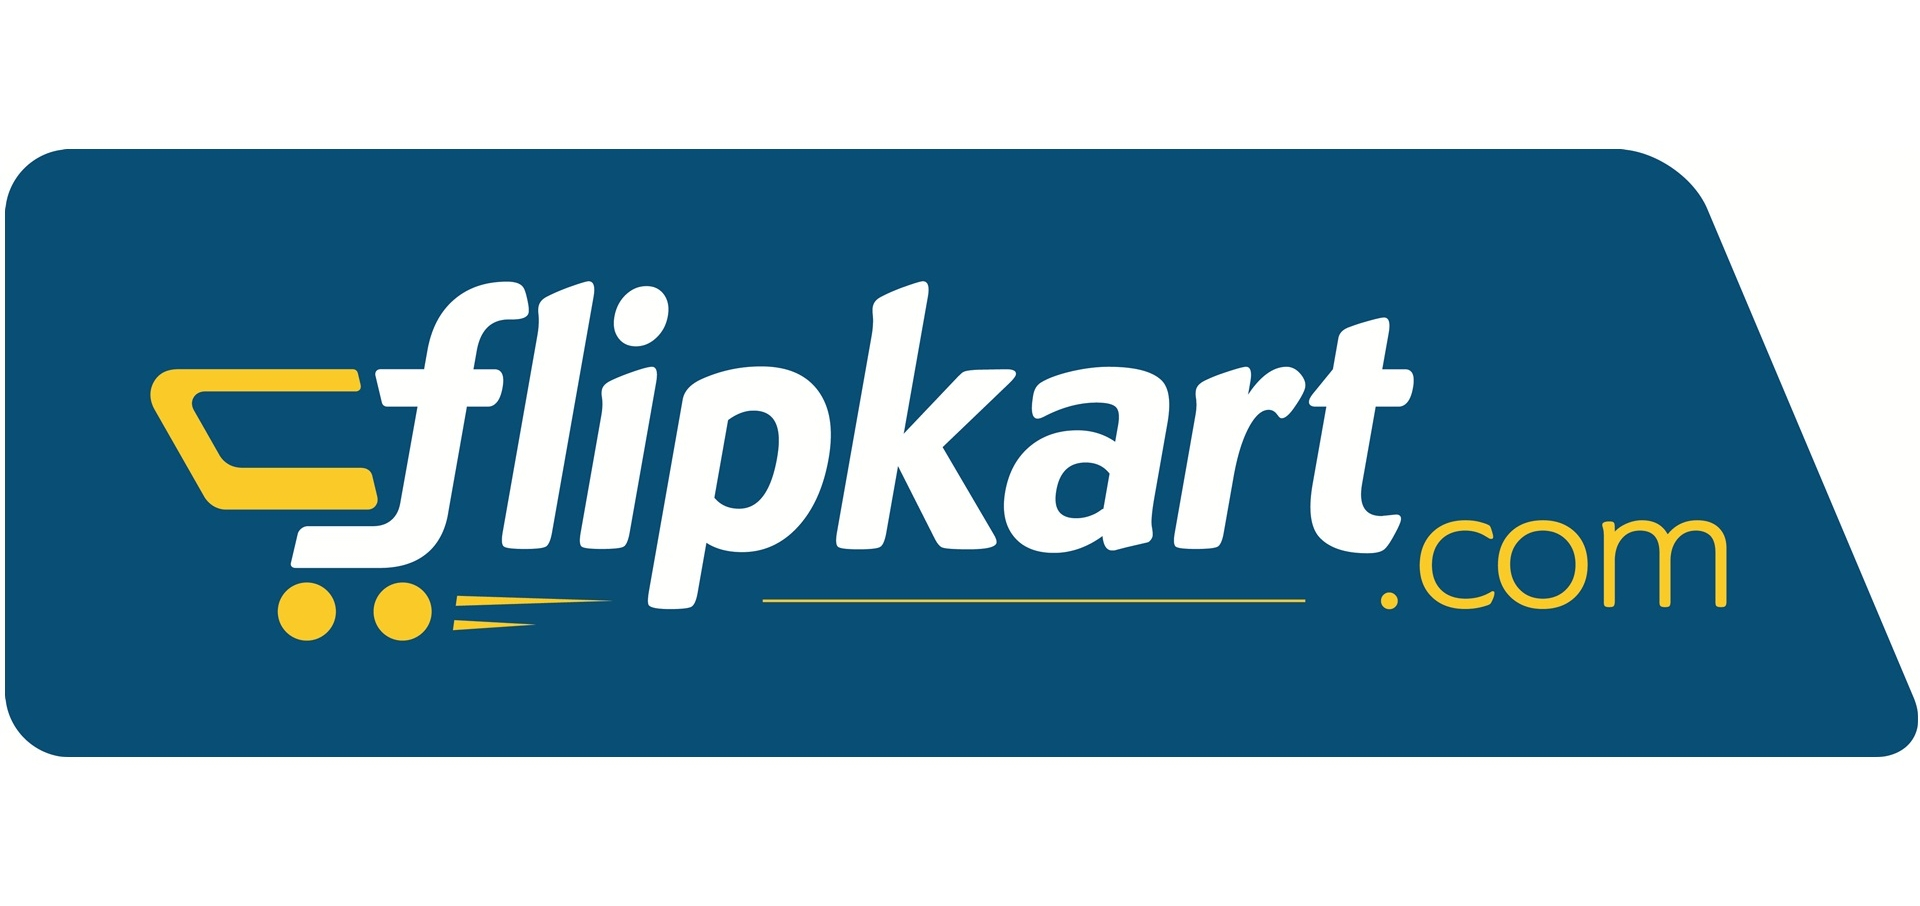 Is Walmart planning an investment in Flipkart, India's largest online retailer?